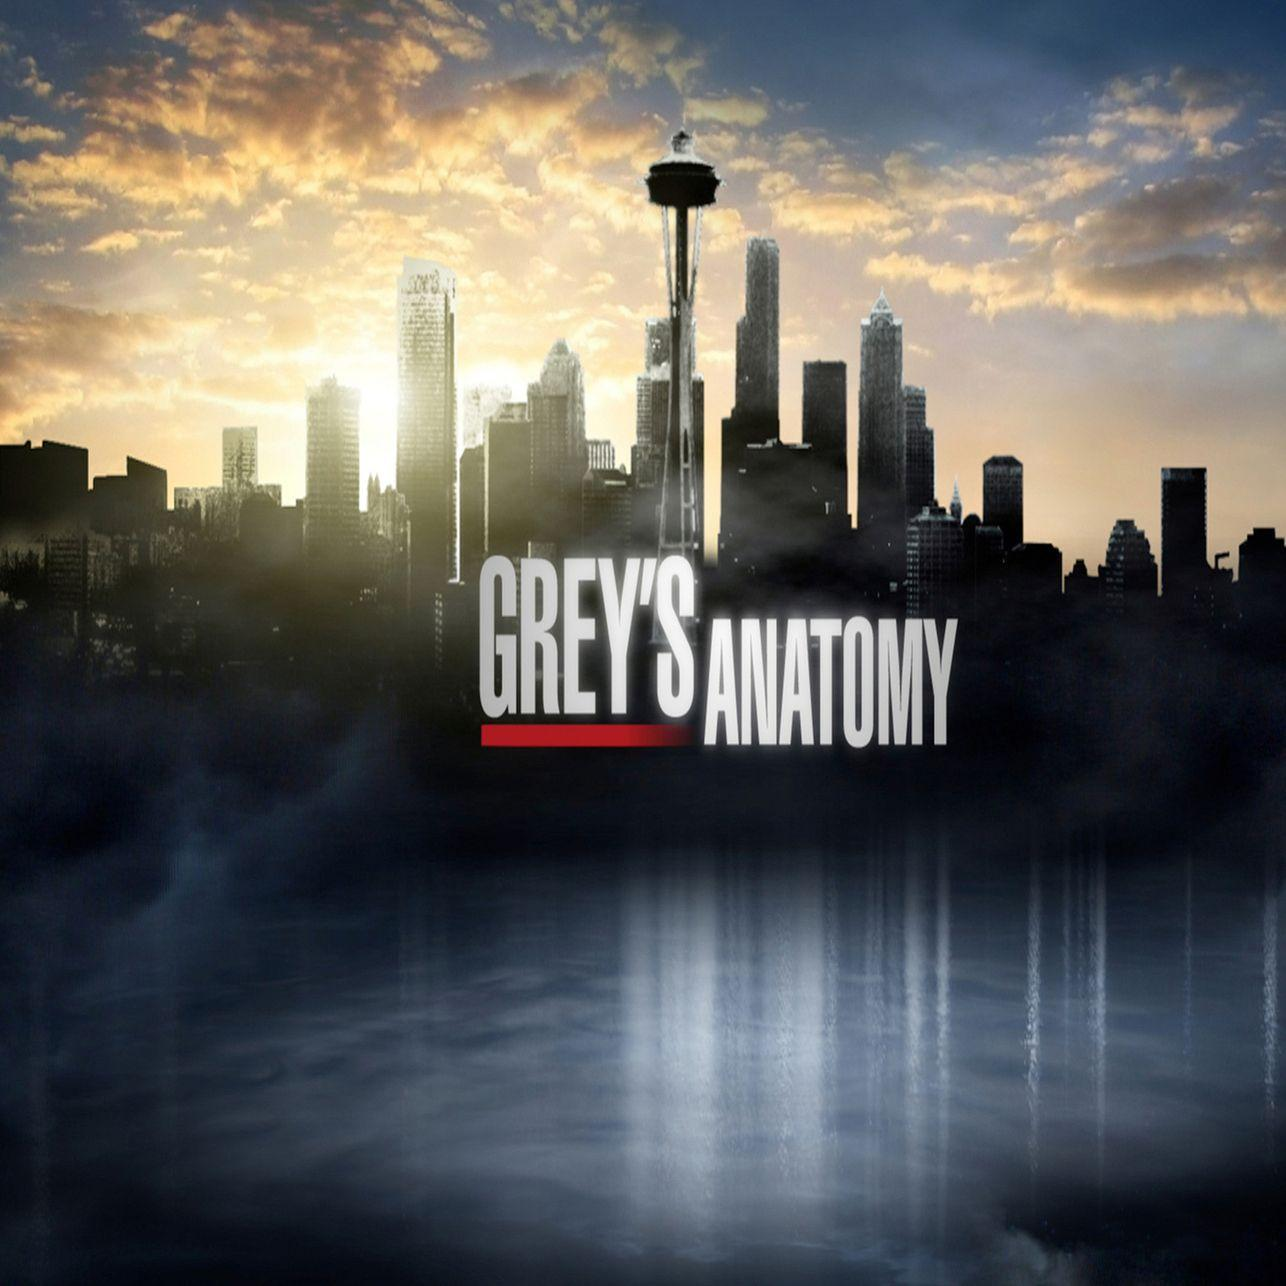 grey's anatomy iphone wallpaper - Google Search | Grey's ...